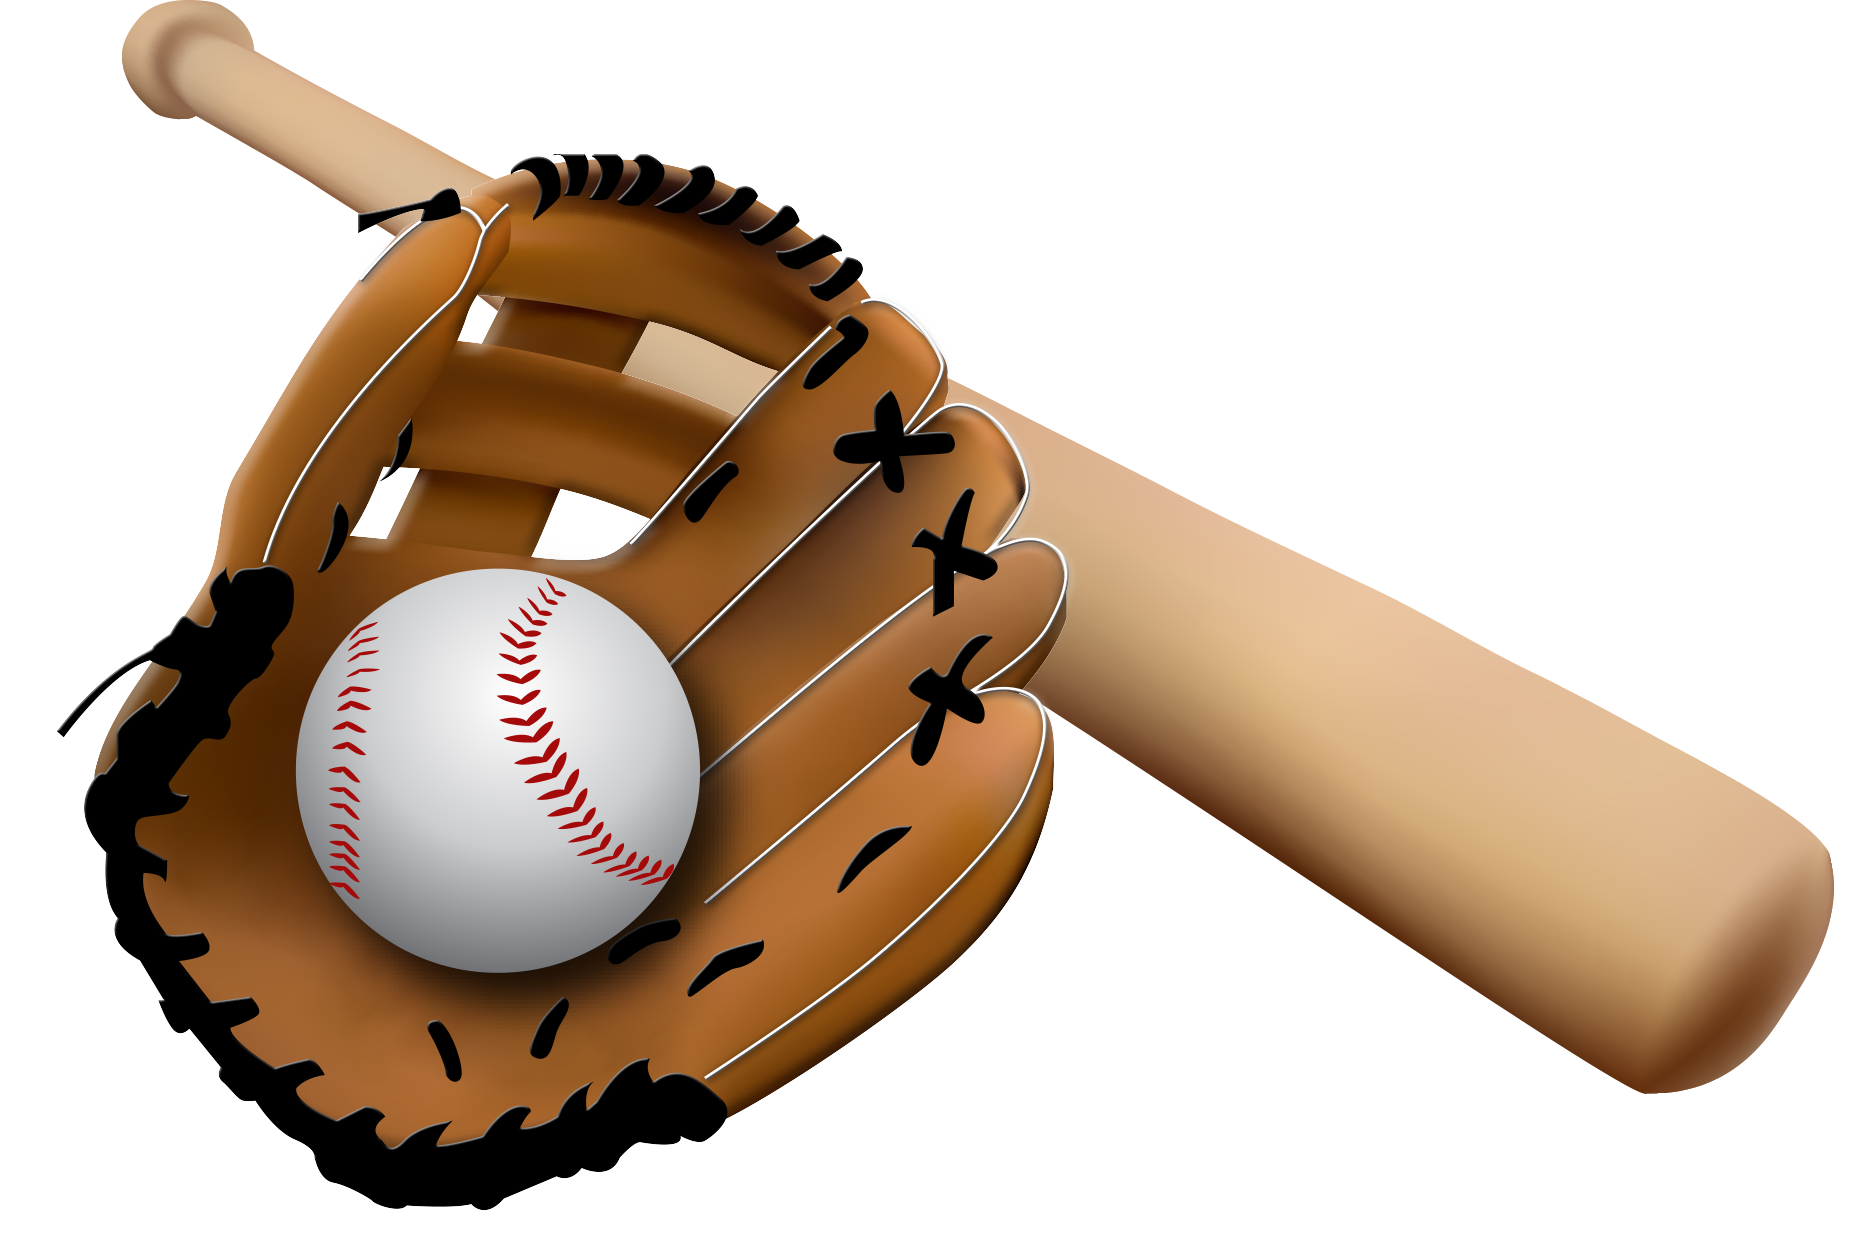 Cute baby clipart baseball mitt and ball transparent back jpg transparent download Pin by Printer on Clipart | Baseball games, Baseball equipment, Baseball jpg transparent download